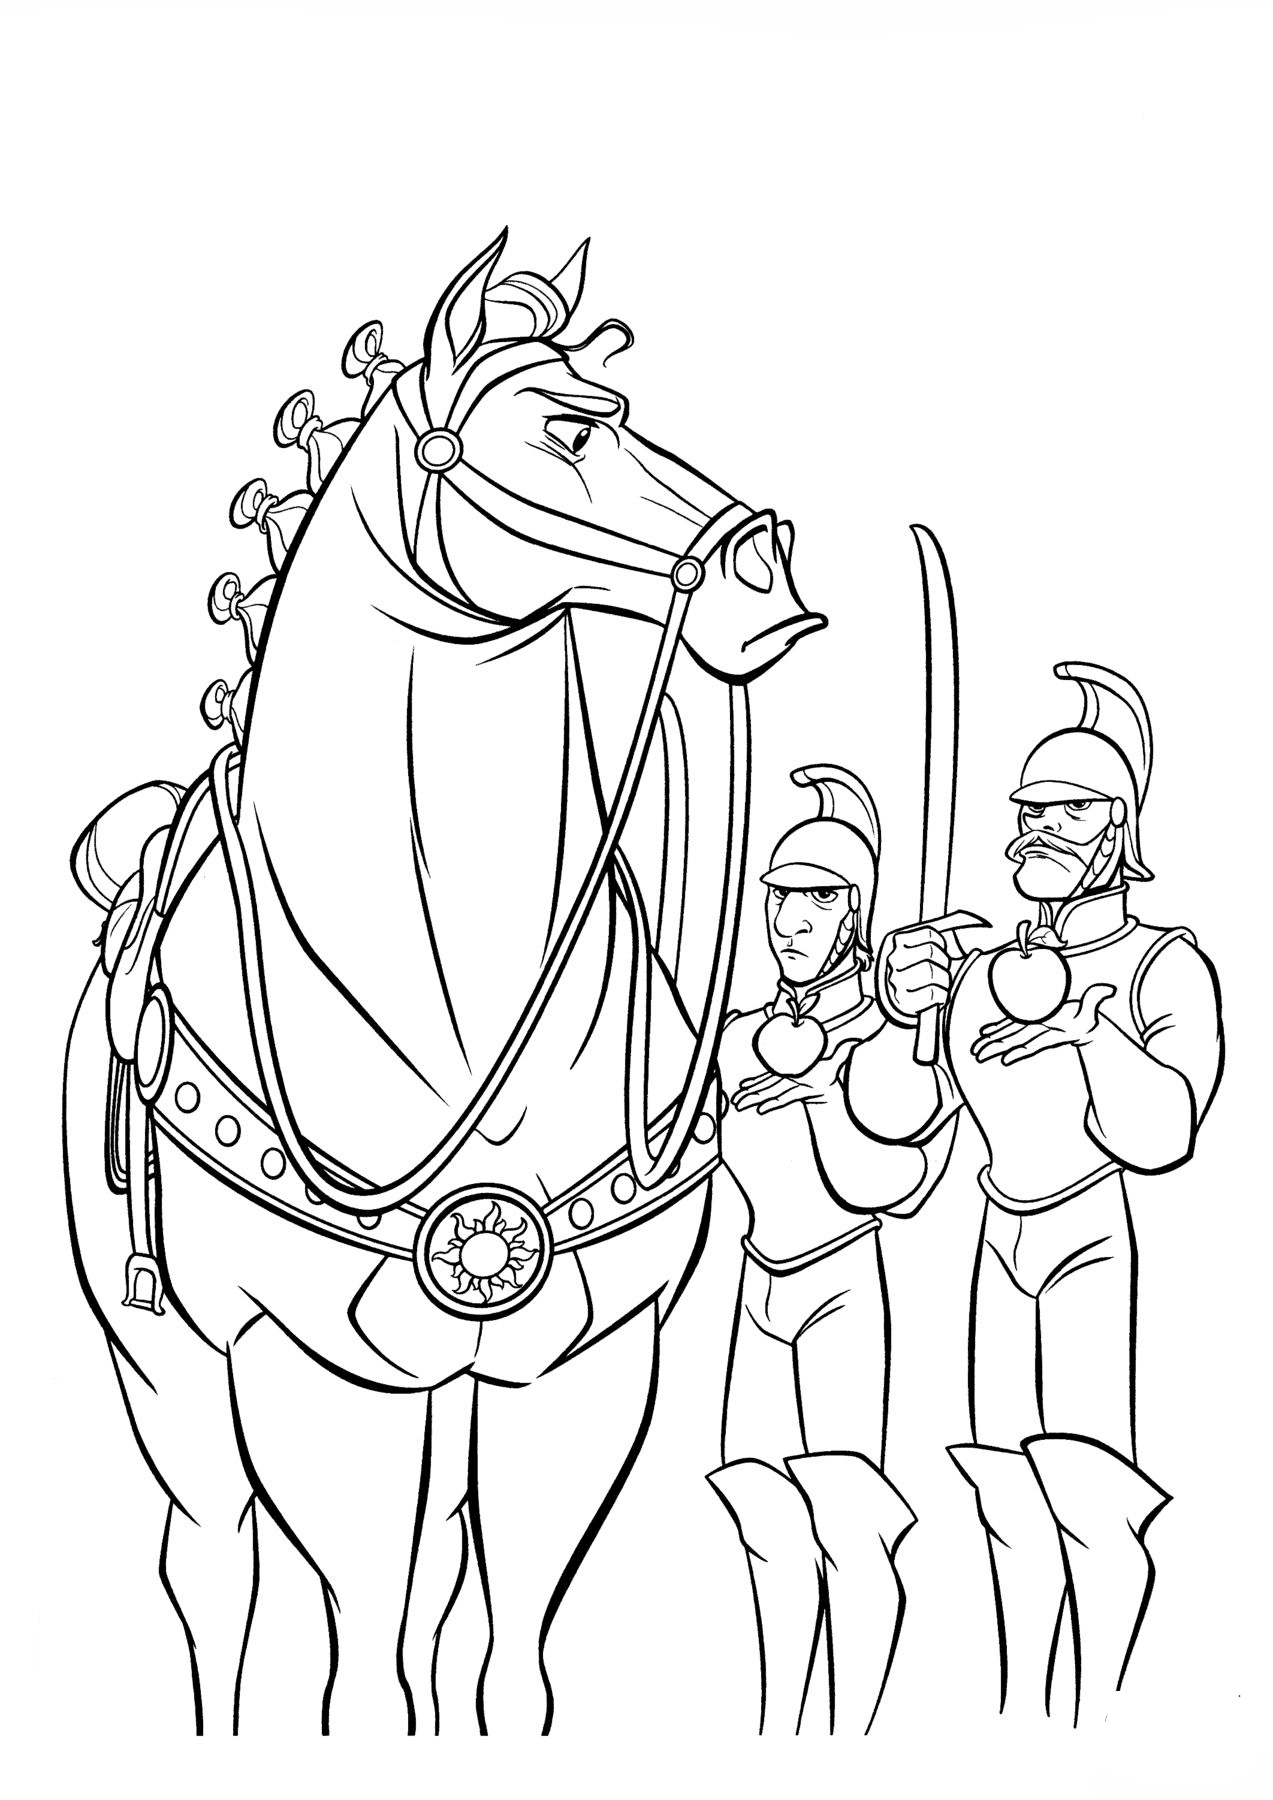 Maximus and royal guards Coloring Page